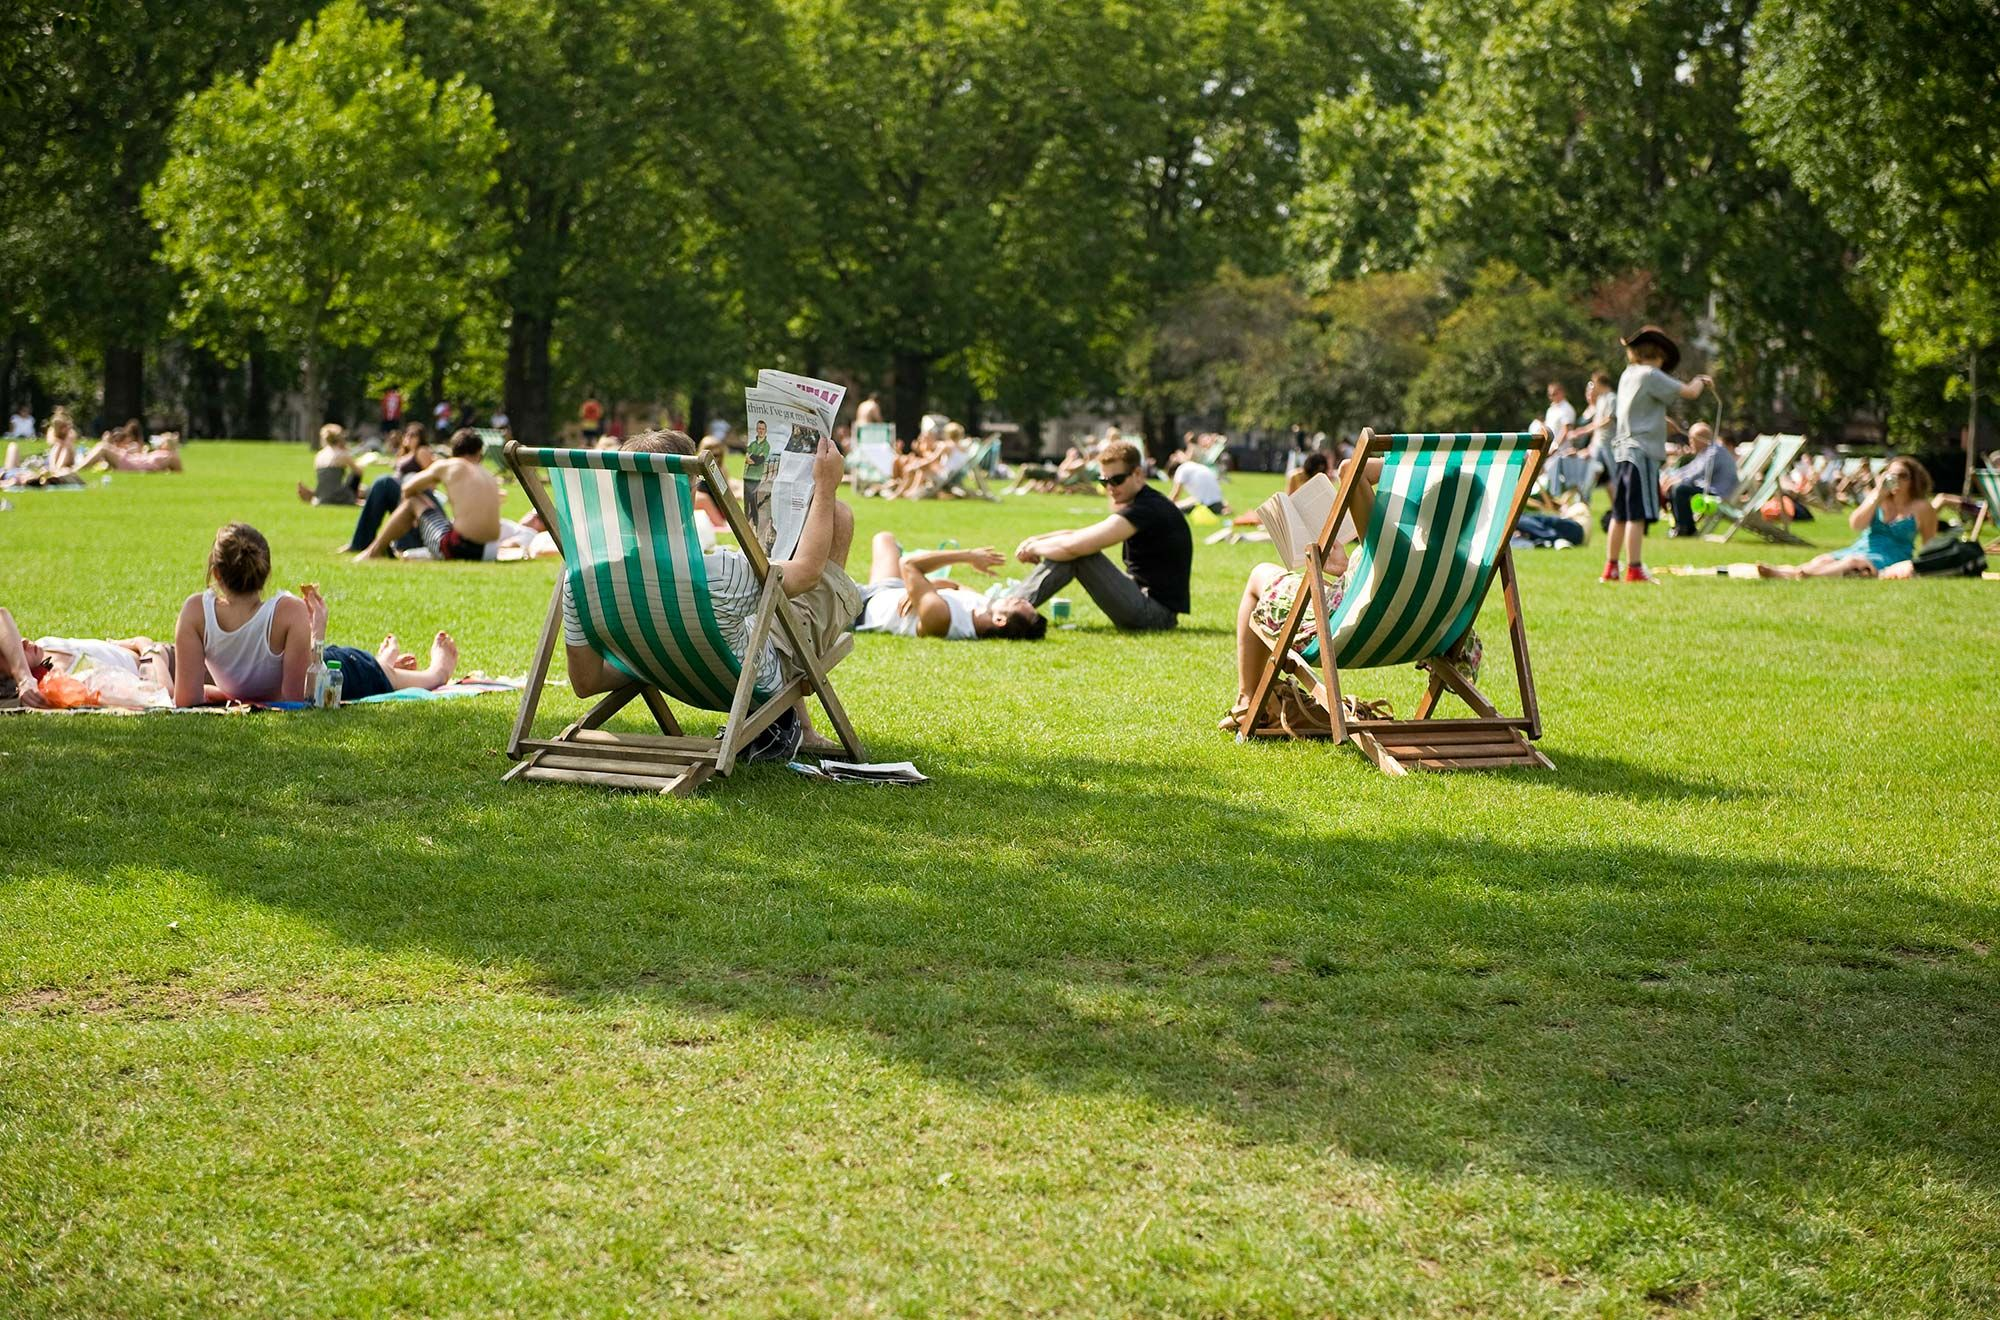 Deckchairs in Green Park